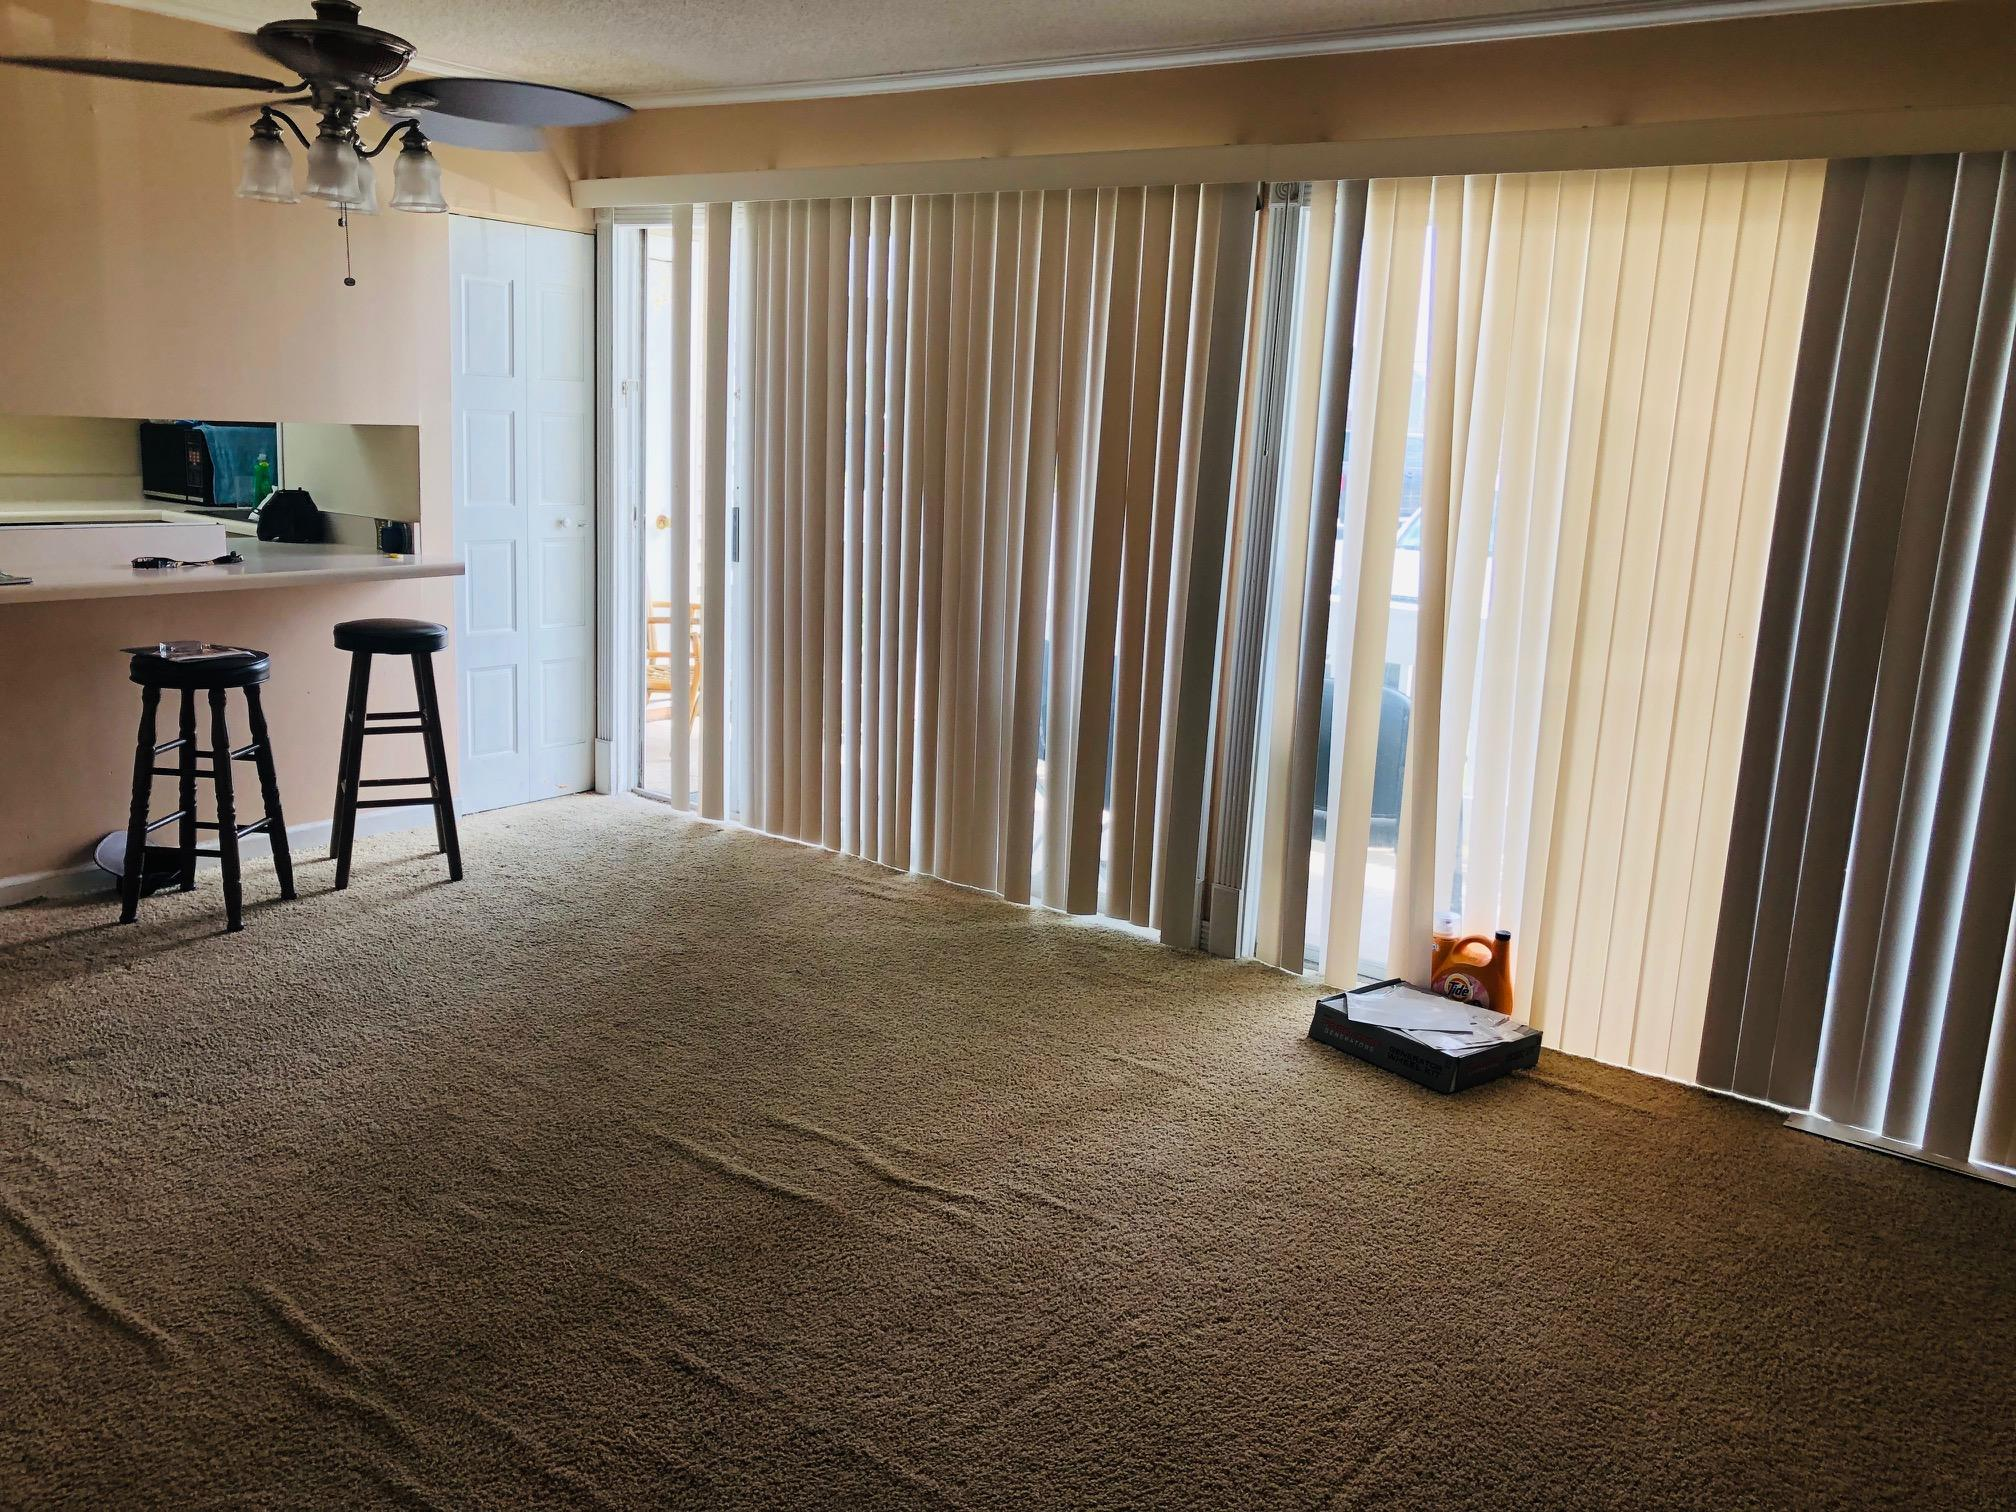 Easy access first floor 2 bedroom Condo.   Centrally located in the Heart of Destin. Washer & Dryer hook up. Amenities Include: 3 Pools, Community room, Bike Racks, Barbeque Grills, Tennis,This Community is surrounded by a Lake. Close to Beaches, Restaurants & Entertainment.  Buyer to verify any and all dimensions. Buyer to honor rental $2100 a month June 1st - Sept 30th and management agreement.